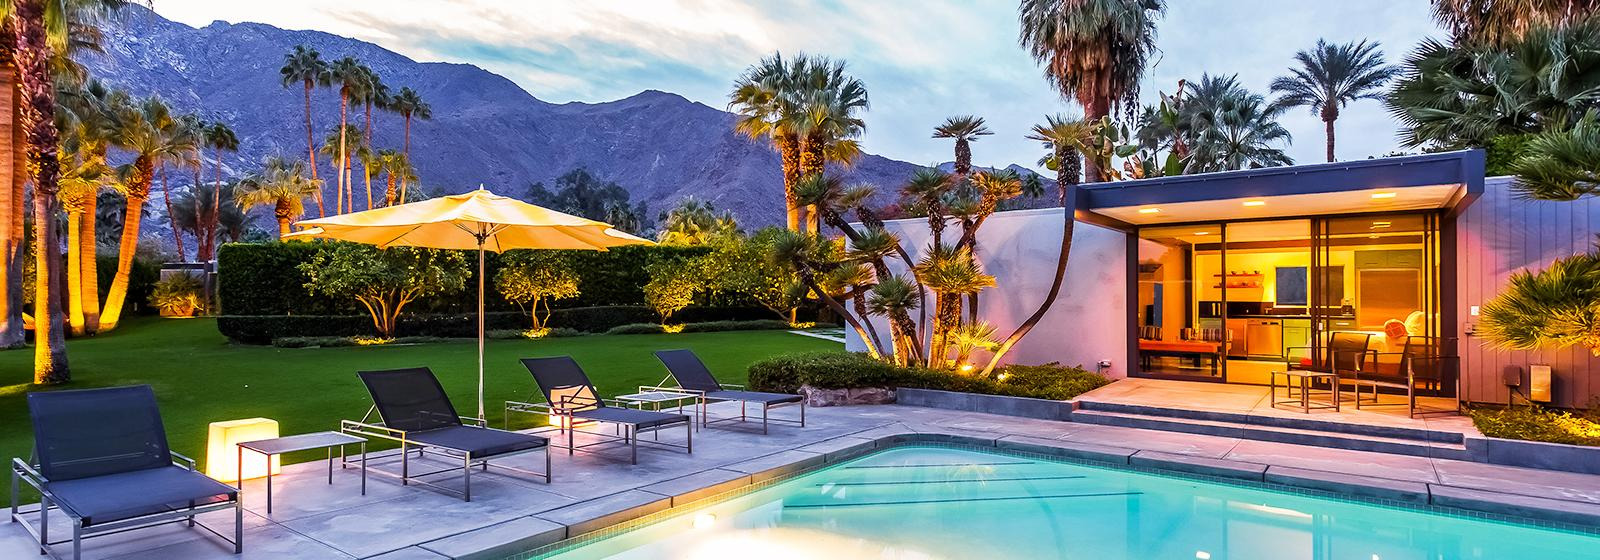 Things to do in Palm Springs